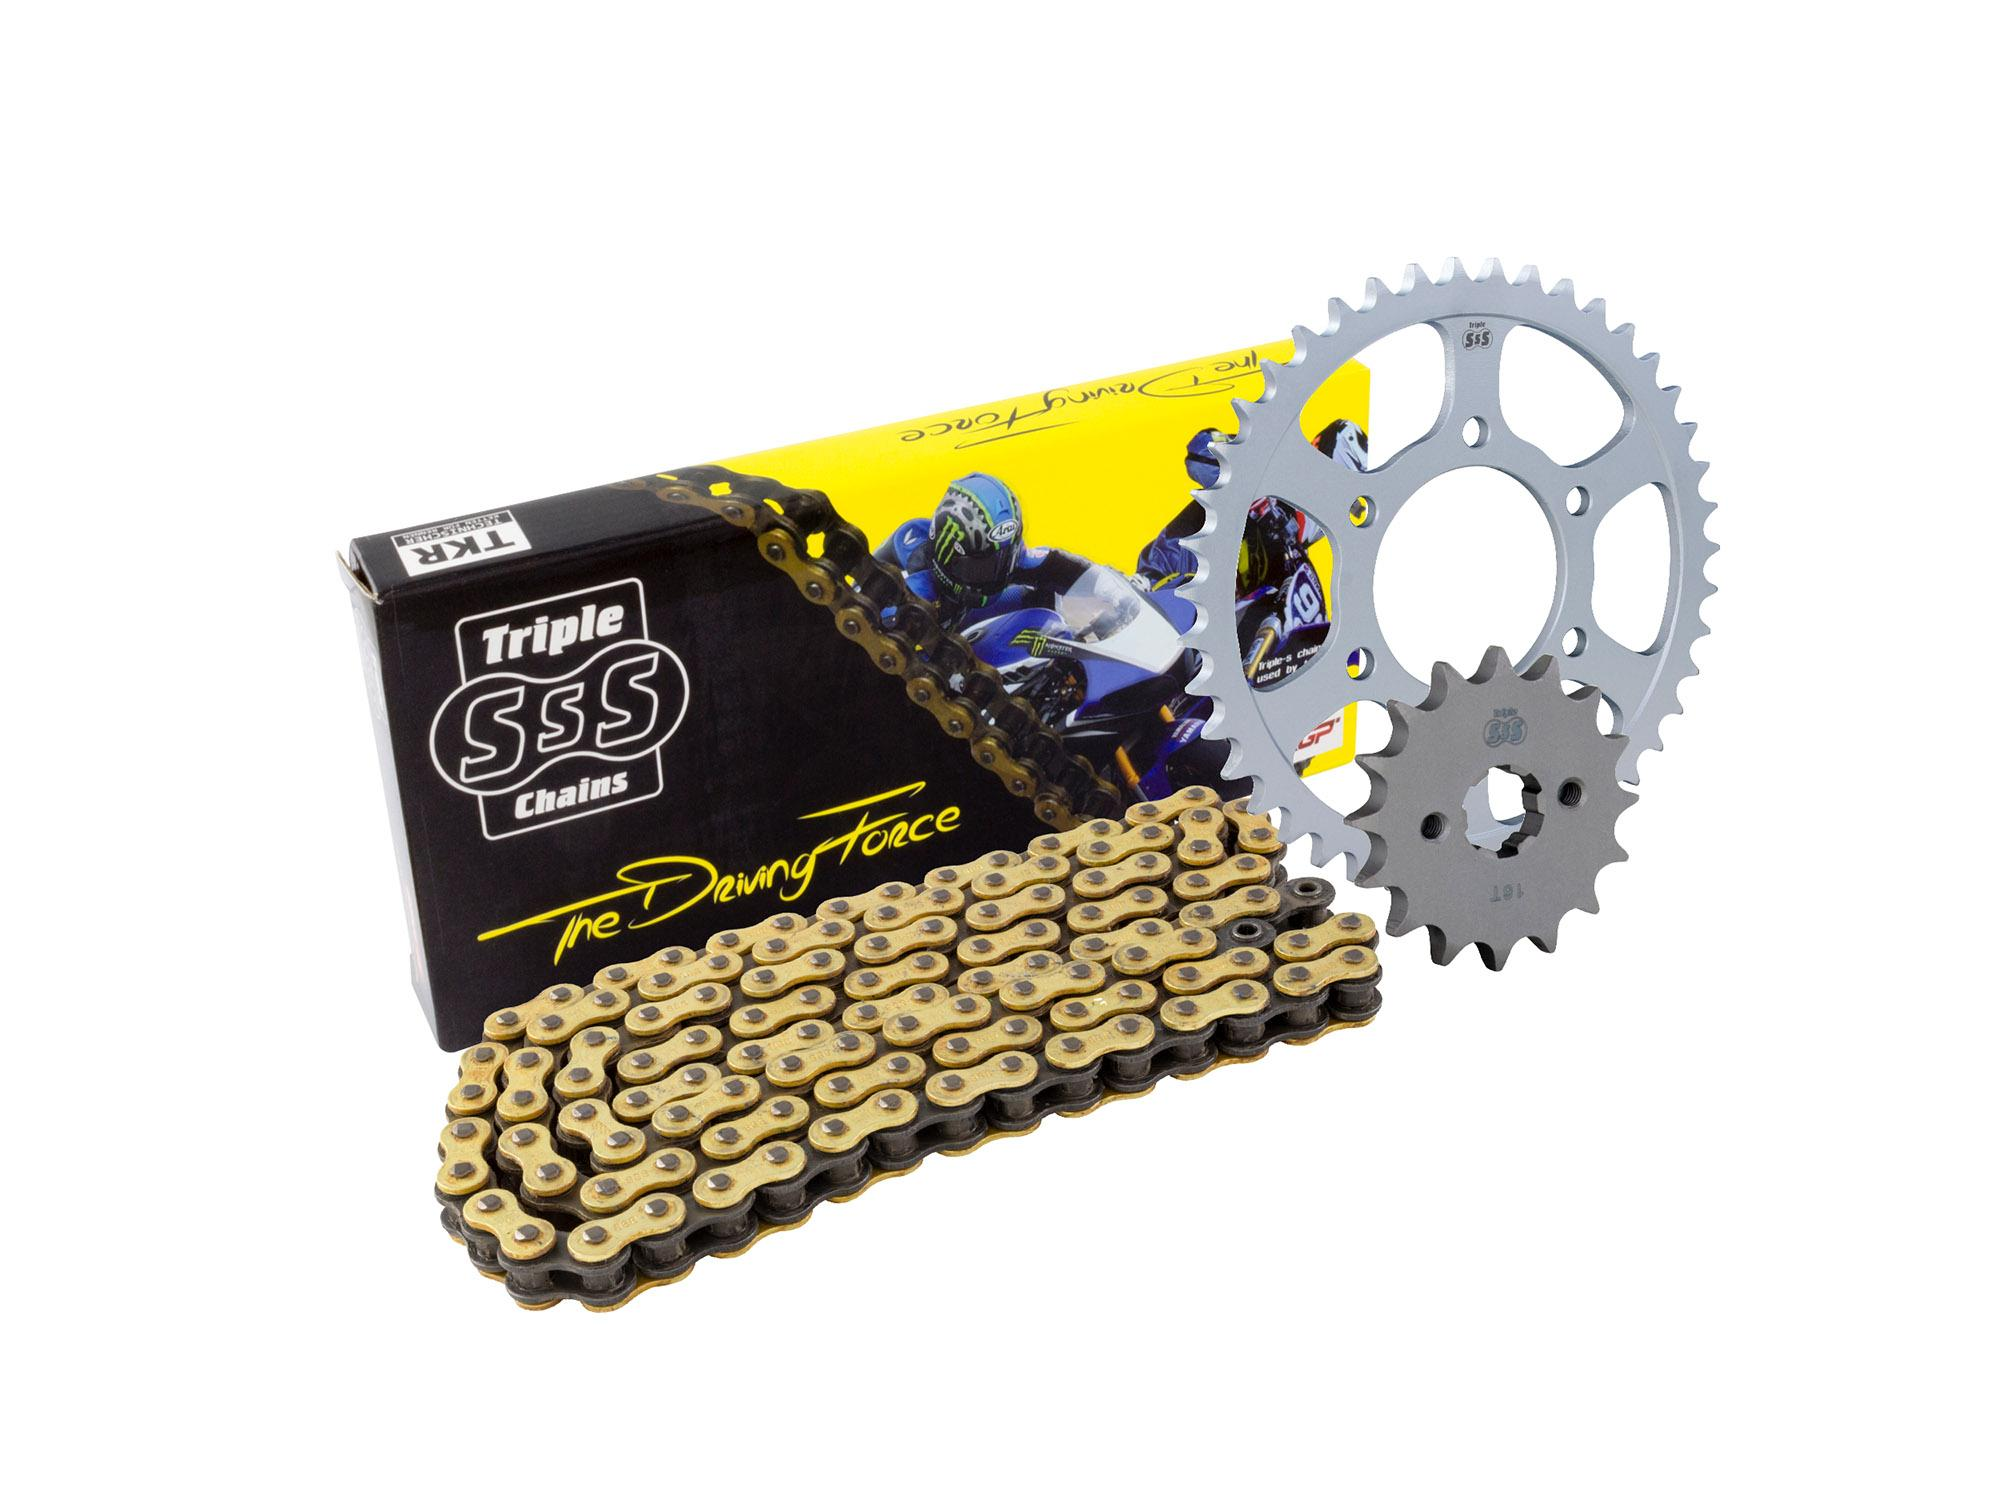 Honda VFR800 Vtec F1-9 / ABS 02-09 Chain & Sprocket Kit: 16T Front, 43T Rear, HD O-Ring Gold Chain 530H 110Link